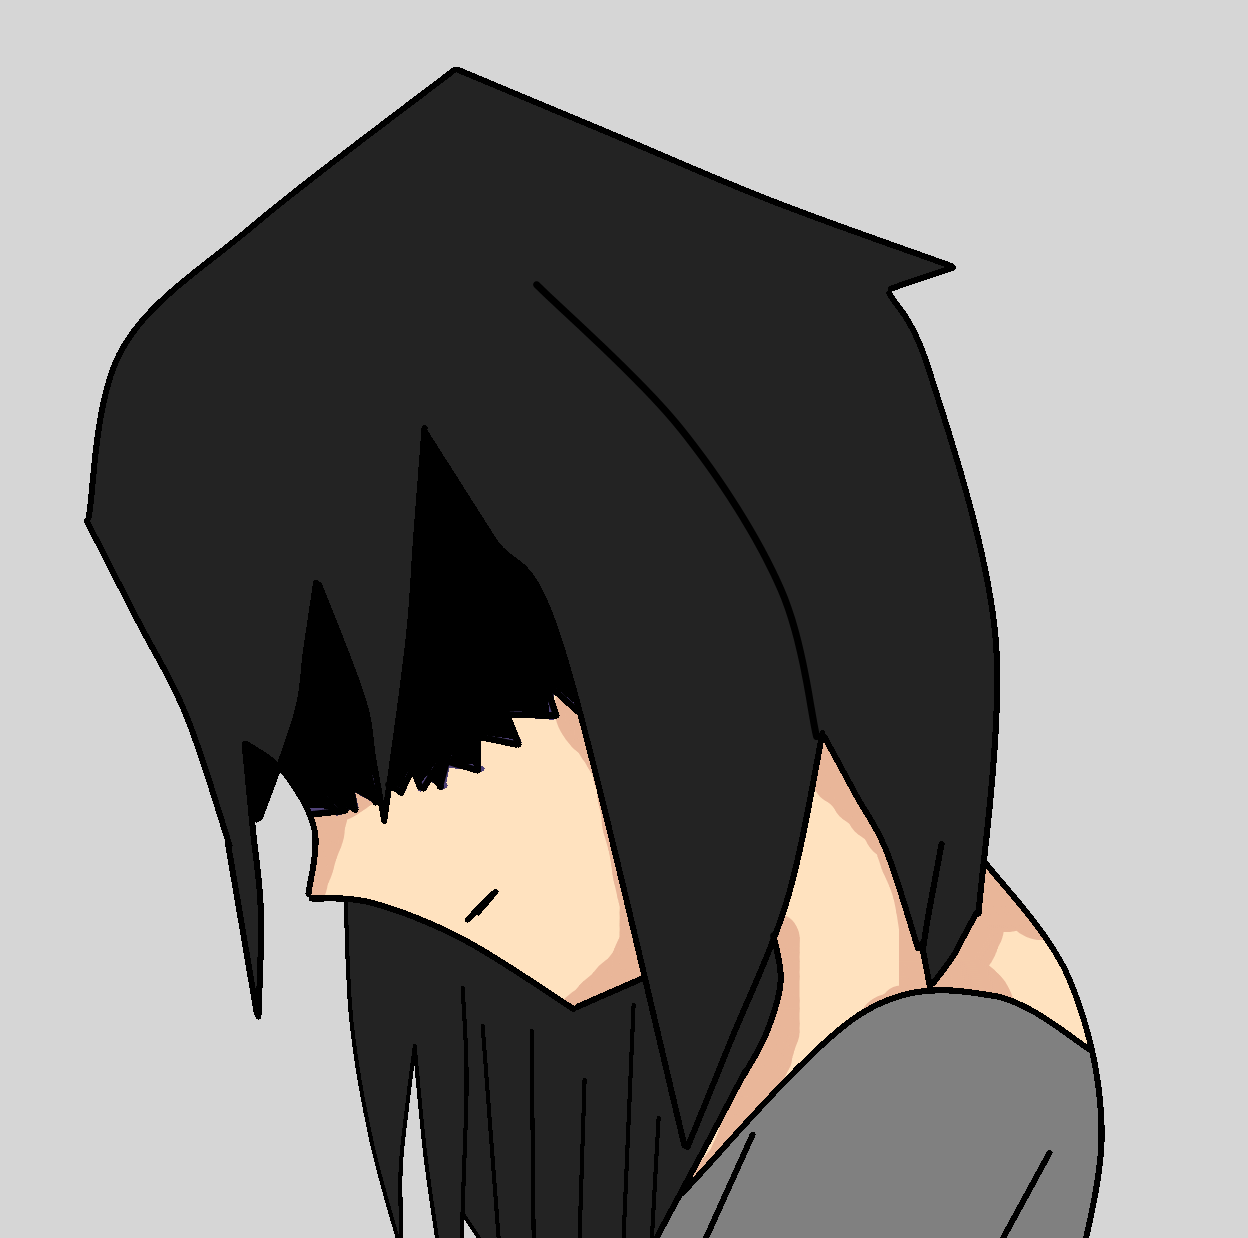 Anime emo girl by streaky300 on deviantart anime emo girl by streaky300 anime emo girl by streaky300 voltagebd Choice Image